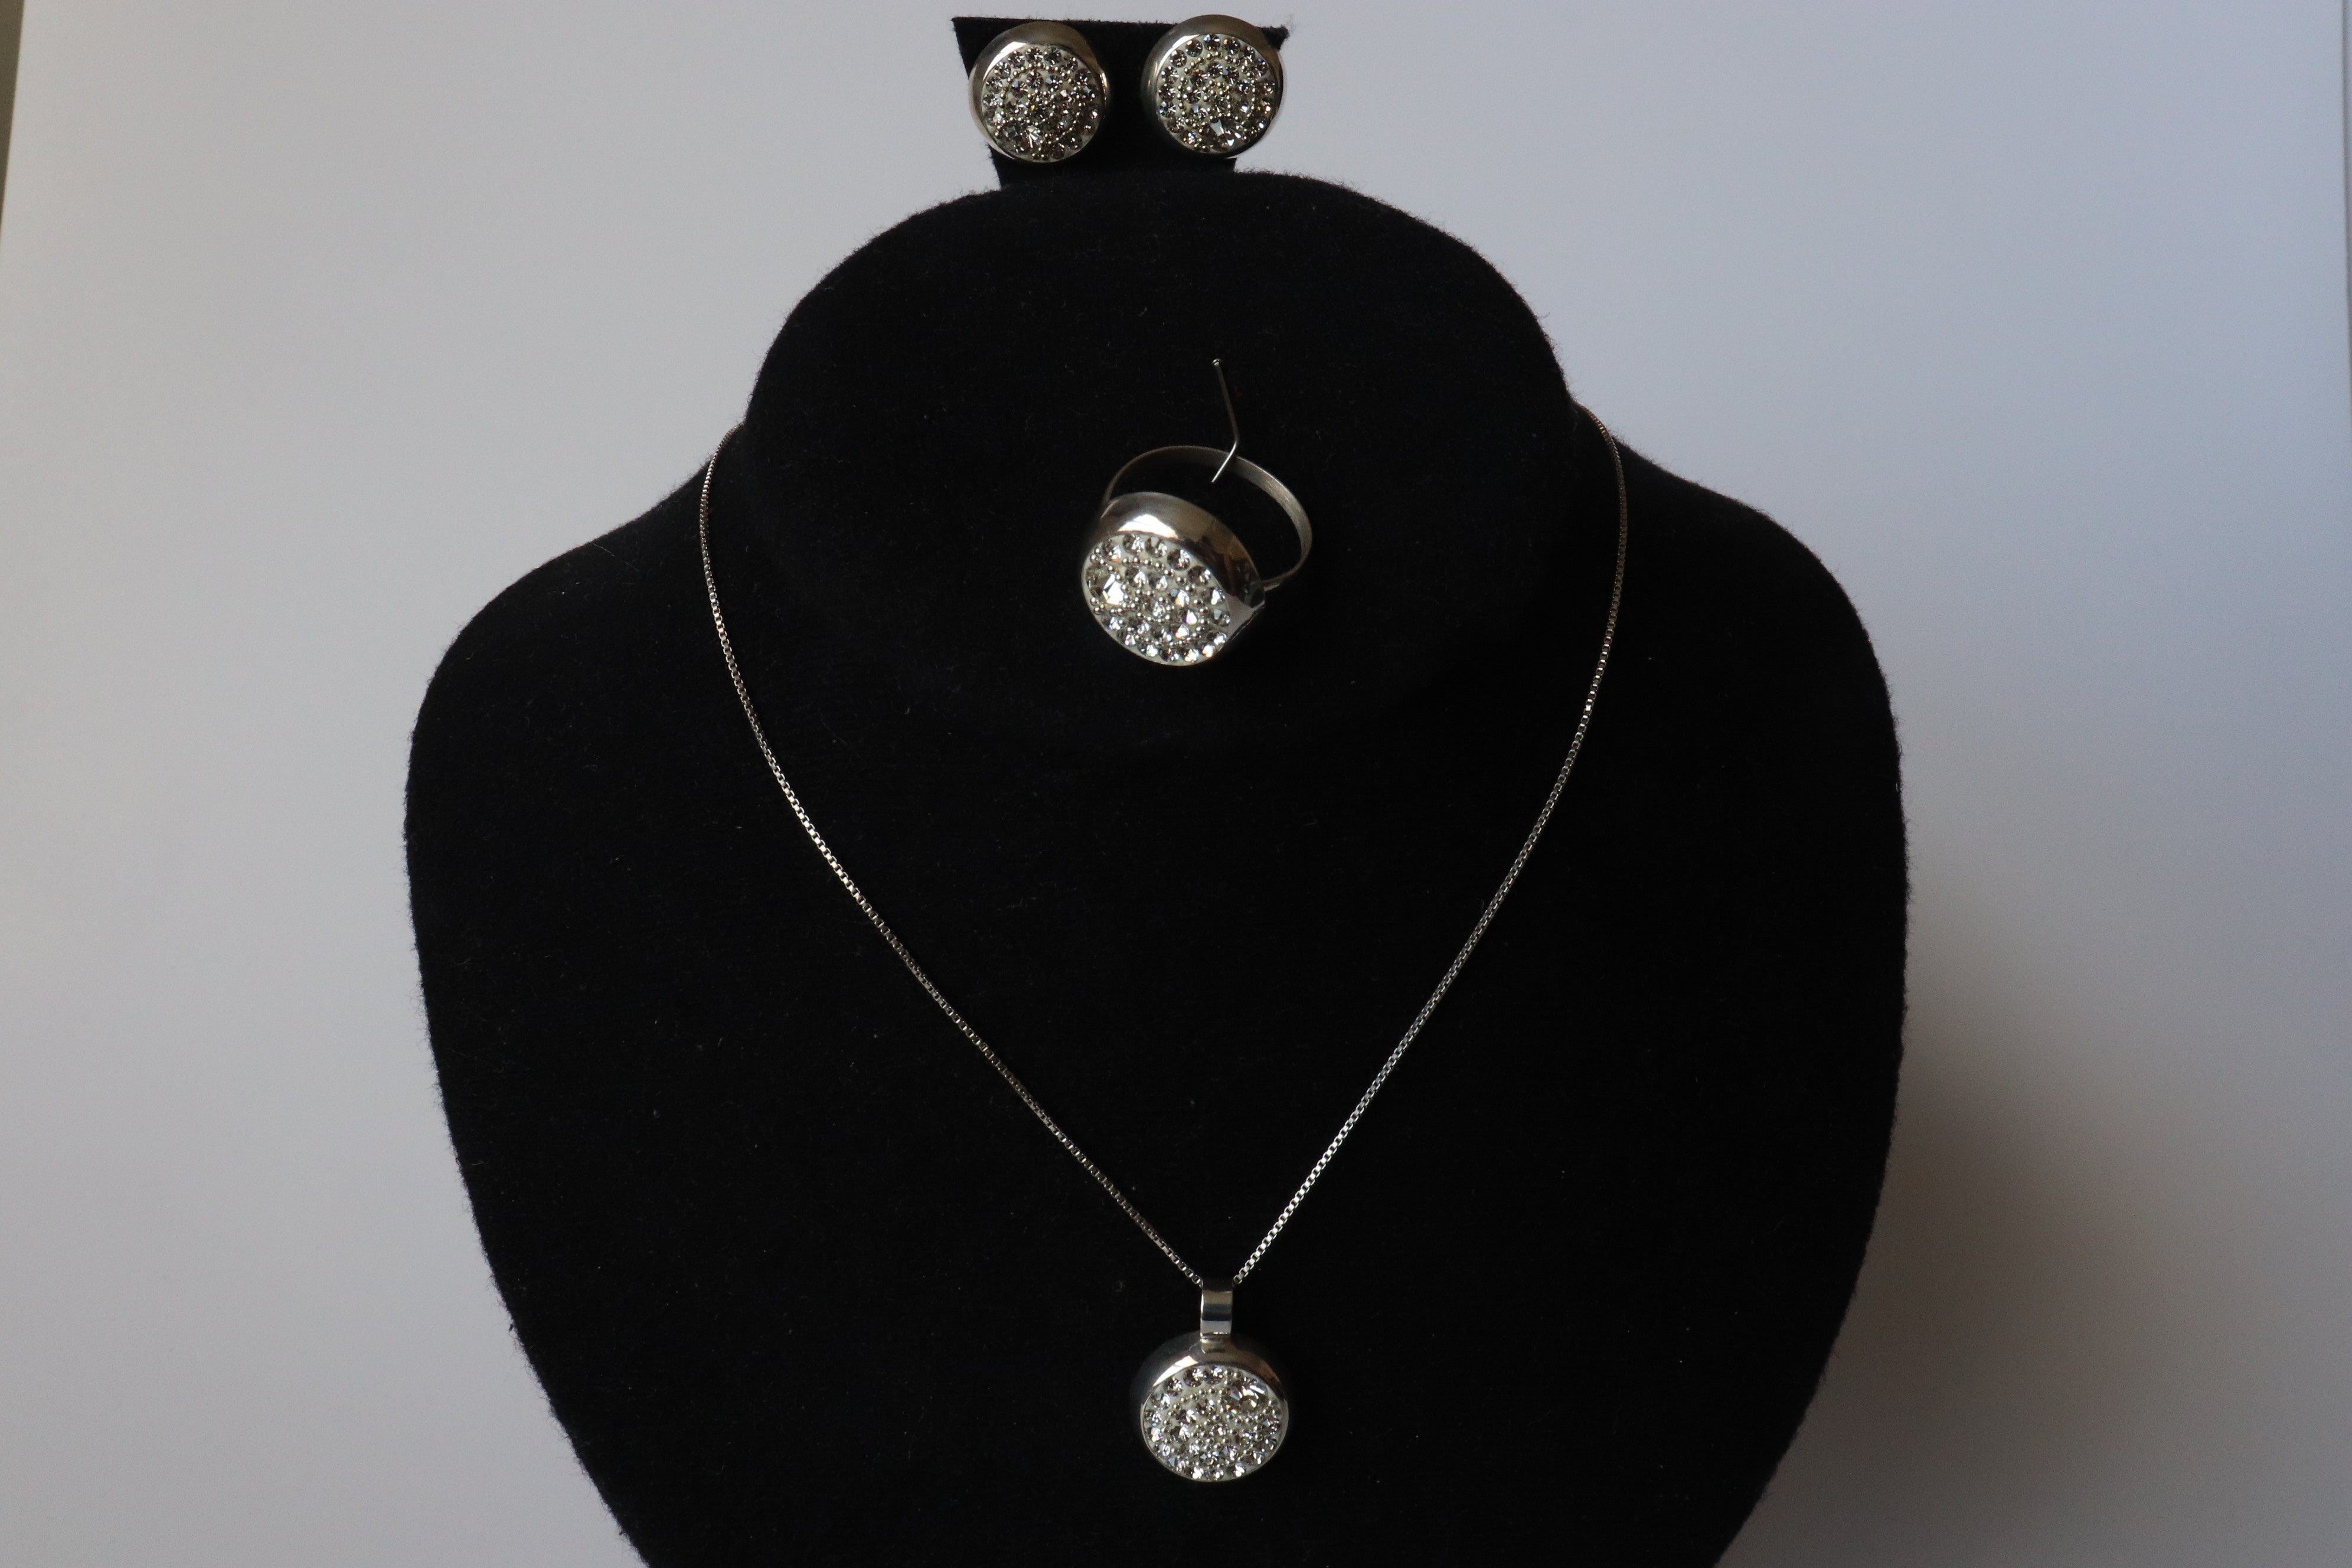 100$ Sterling .925 Silver White Zircon Stone, Necklace Earrings and Ring Sets Dubai Design